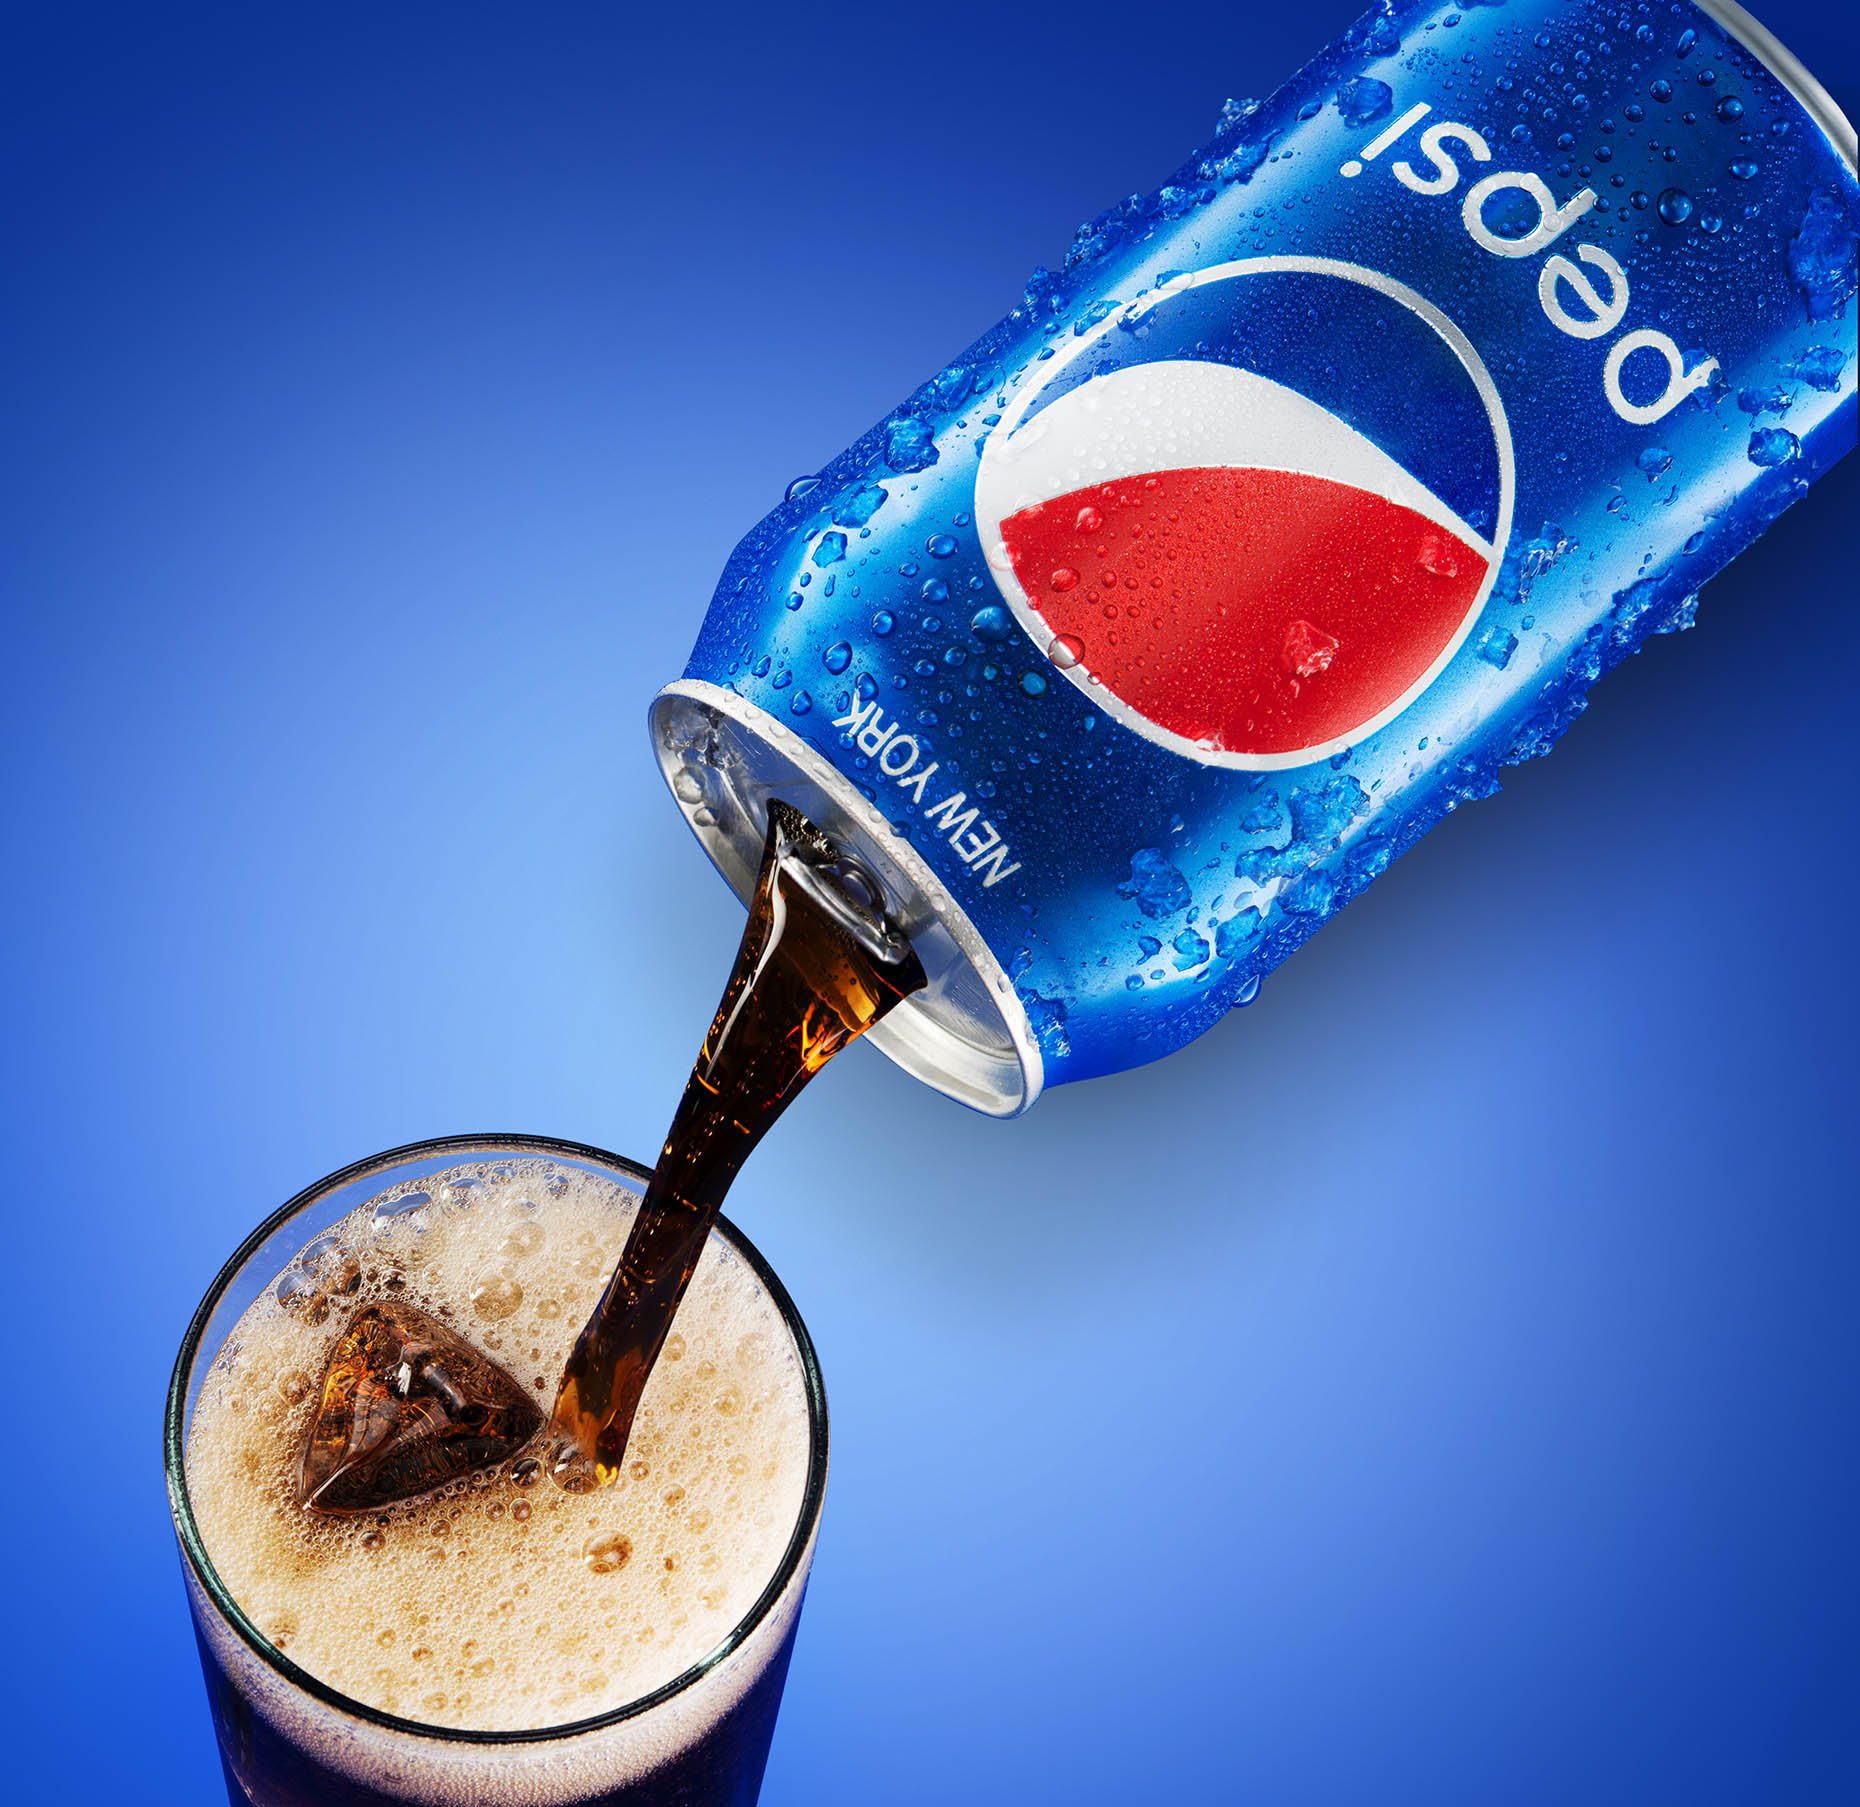 New-york-liquid-phtography-beverage-photography-new-york-pepsi-pours